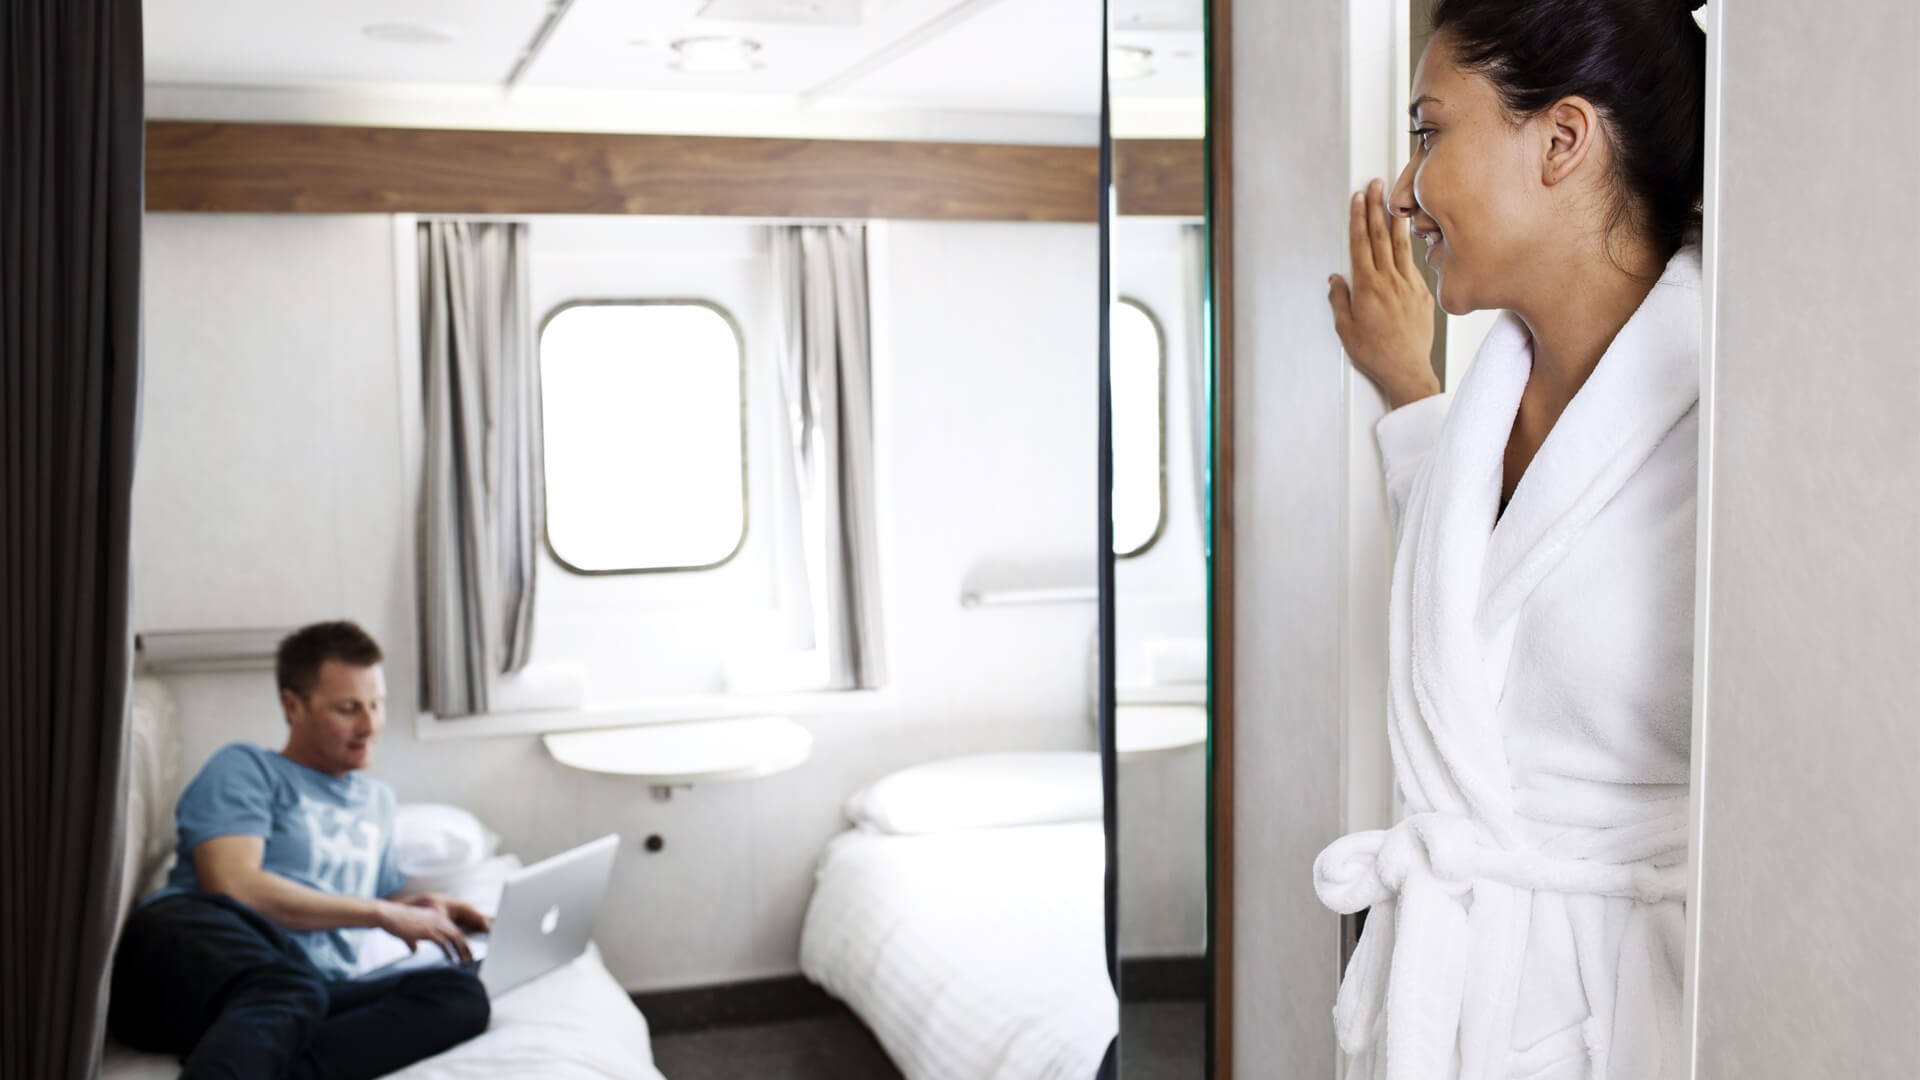 Enjoy the cabins private ensuites on board.